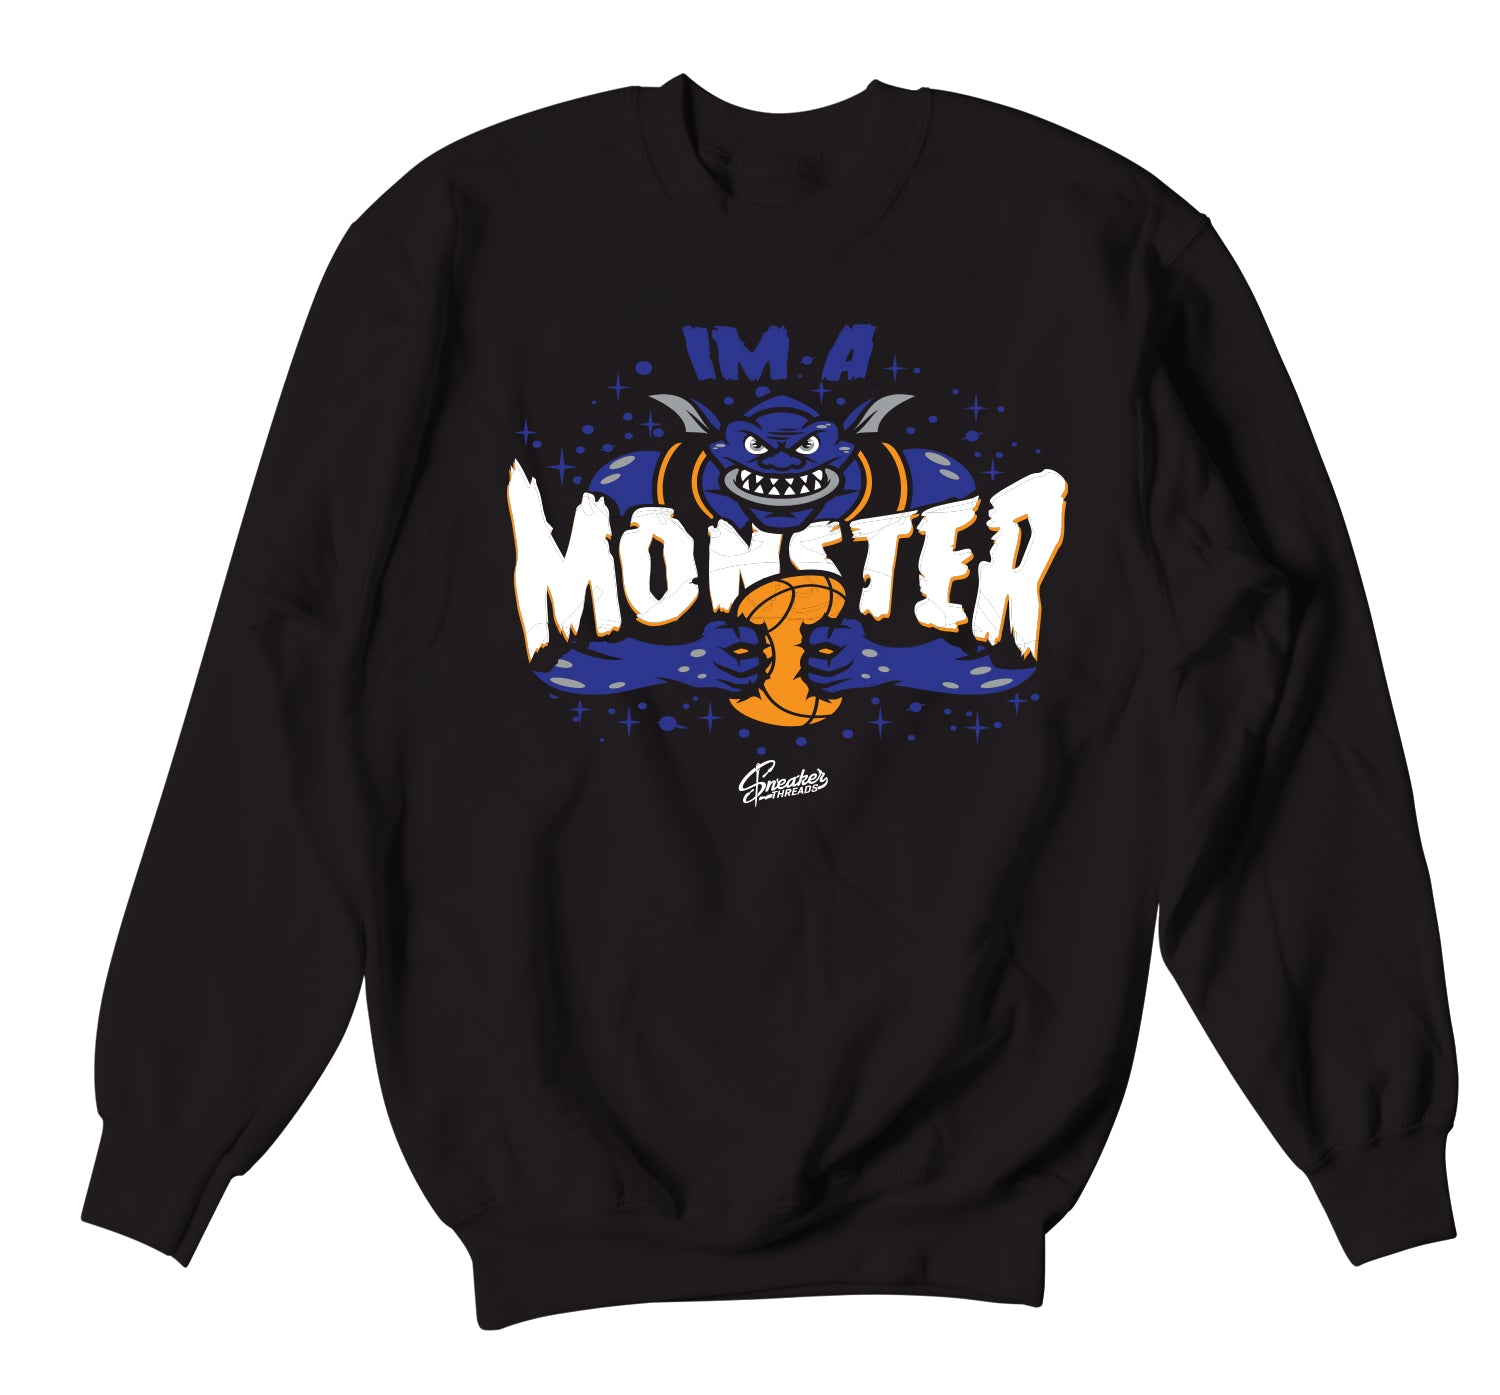 All Star 2020 Monstars Sweater  - I'm A Monster - Black